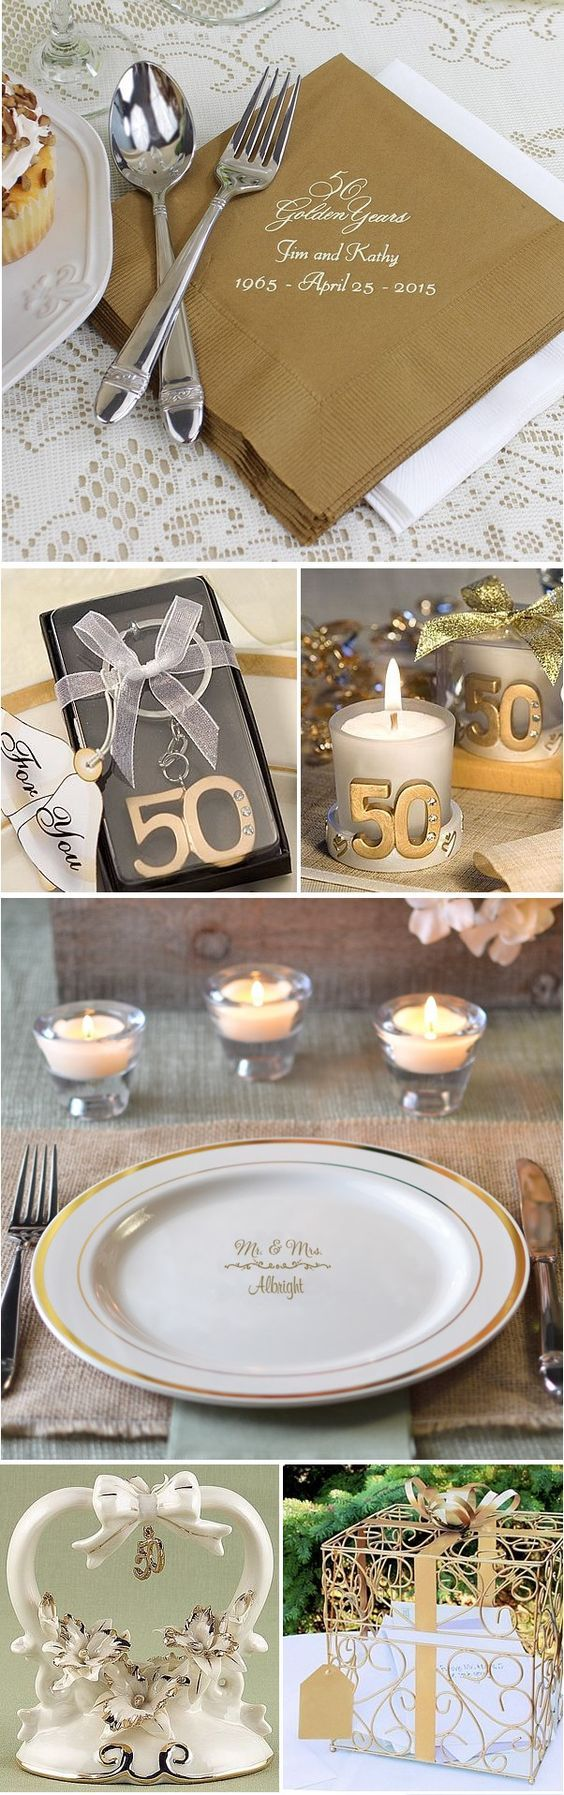 Wedding anniversary decorations at home   best th Annivesary images on Pinterest